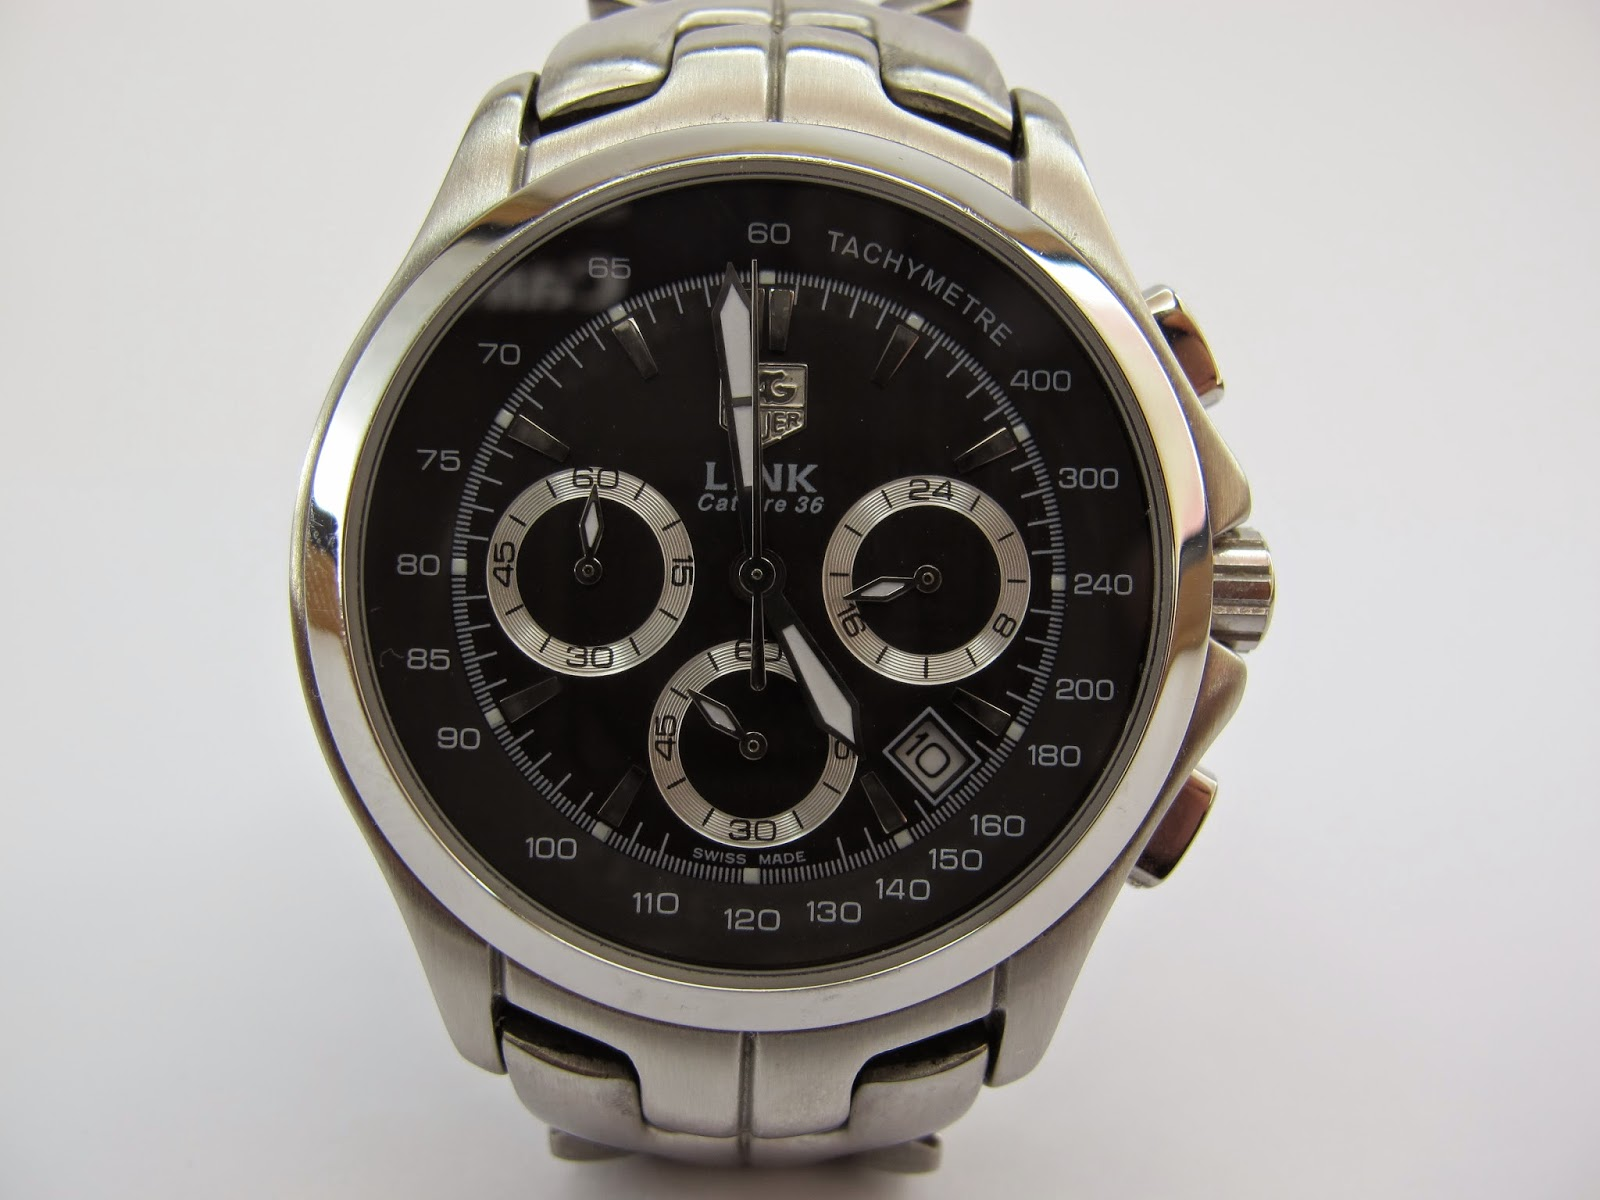 6ed71413f51 This watch has a black dial with an internal tachymeter ring. The Tag Heuer  logo is a dead give away. This watch is equipped with sword type hands.